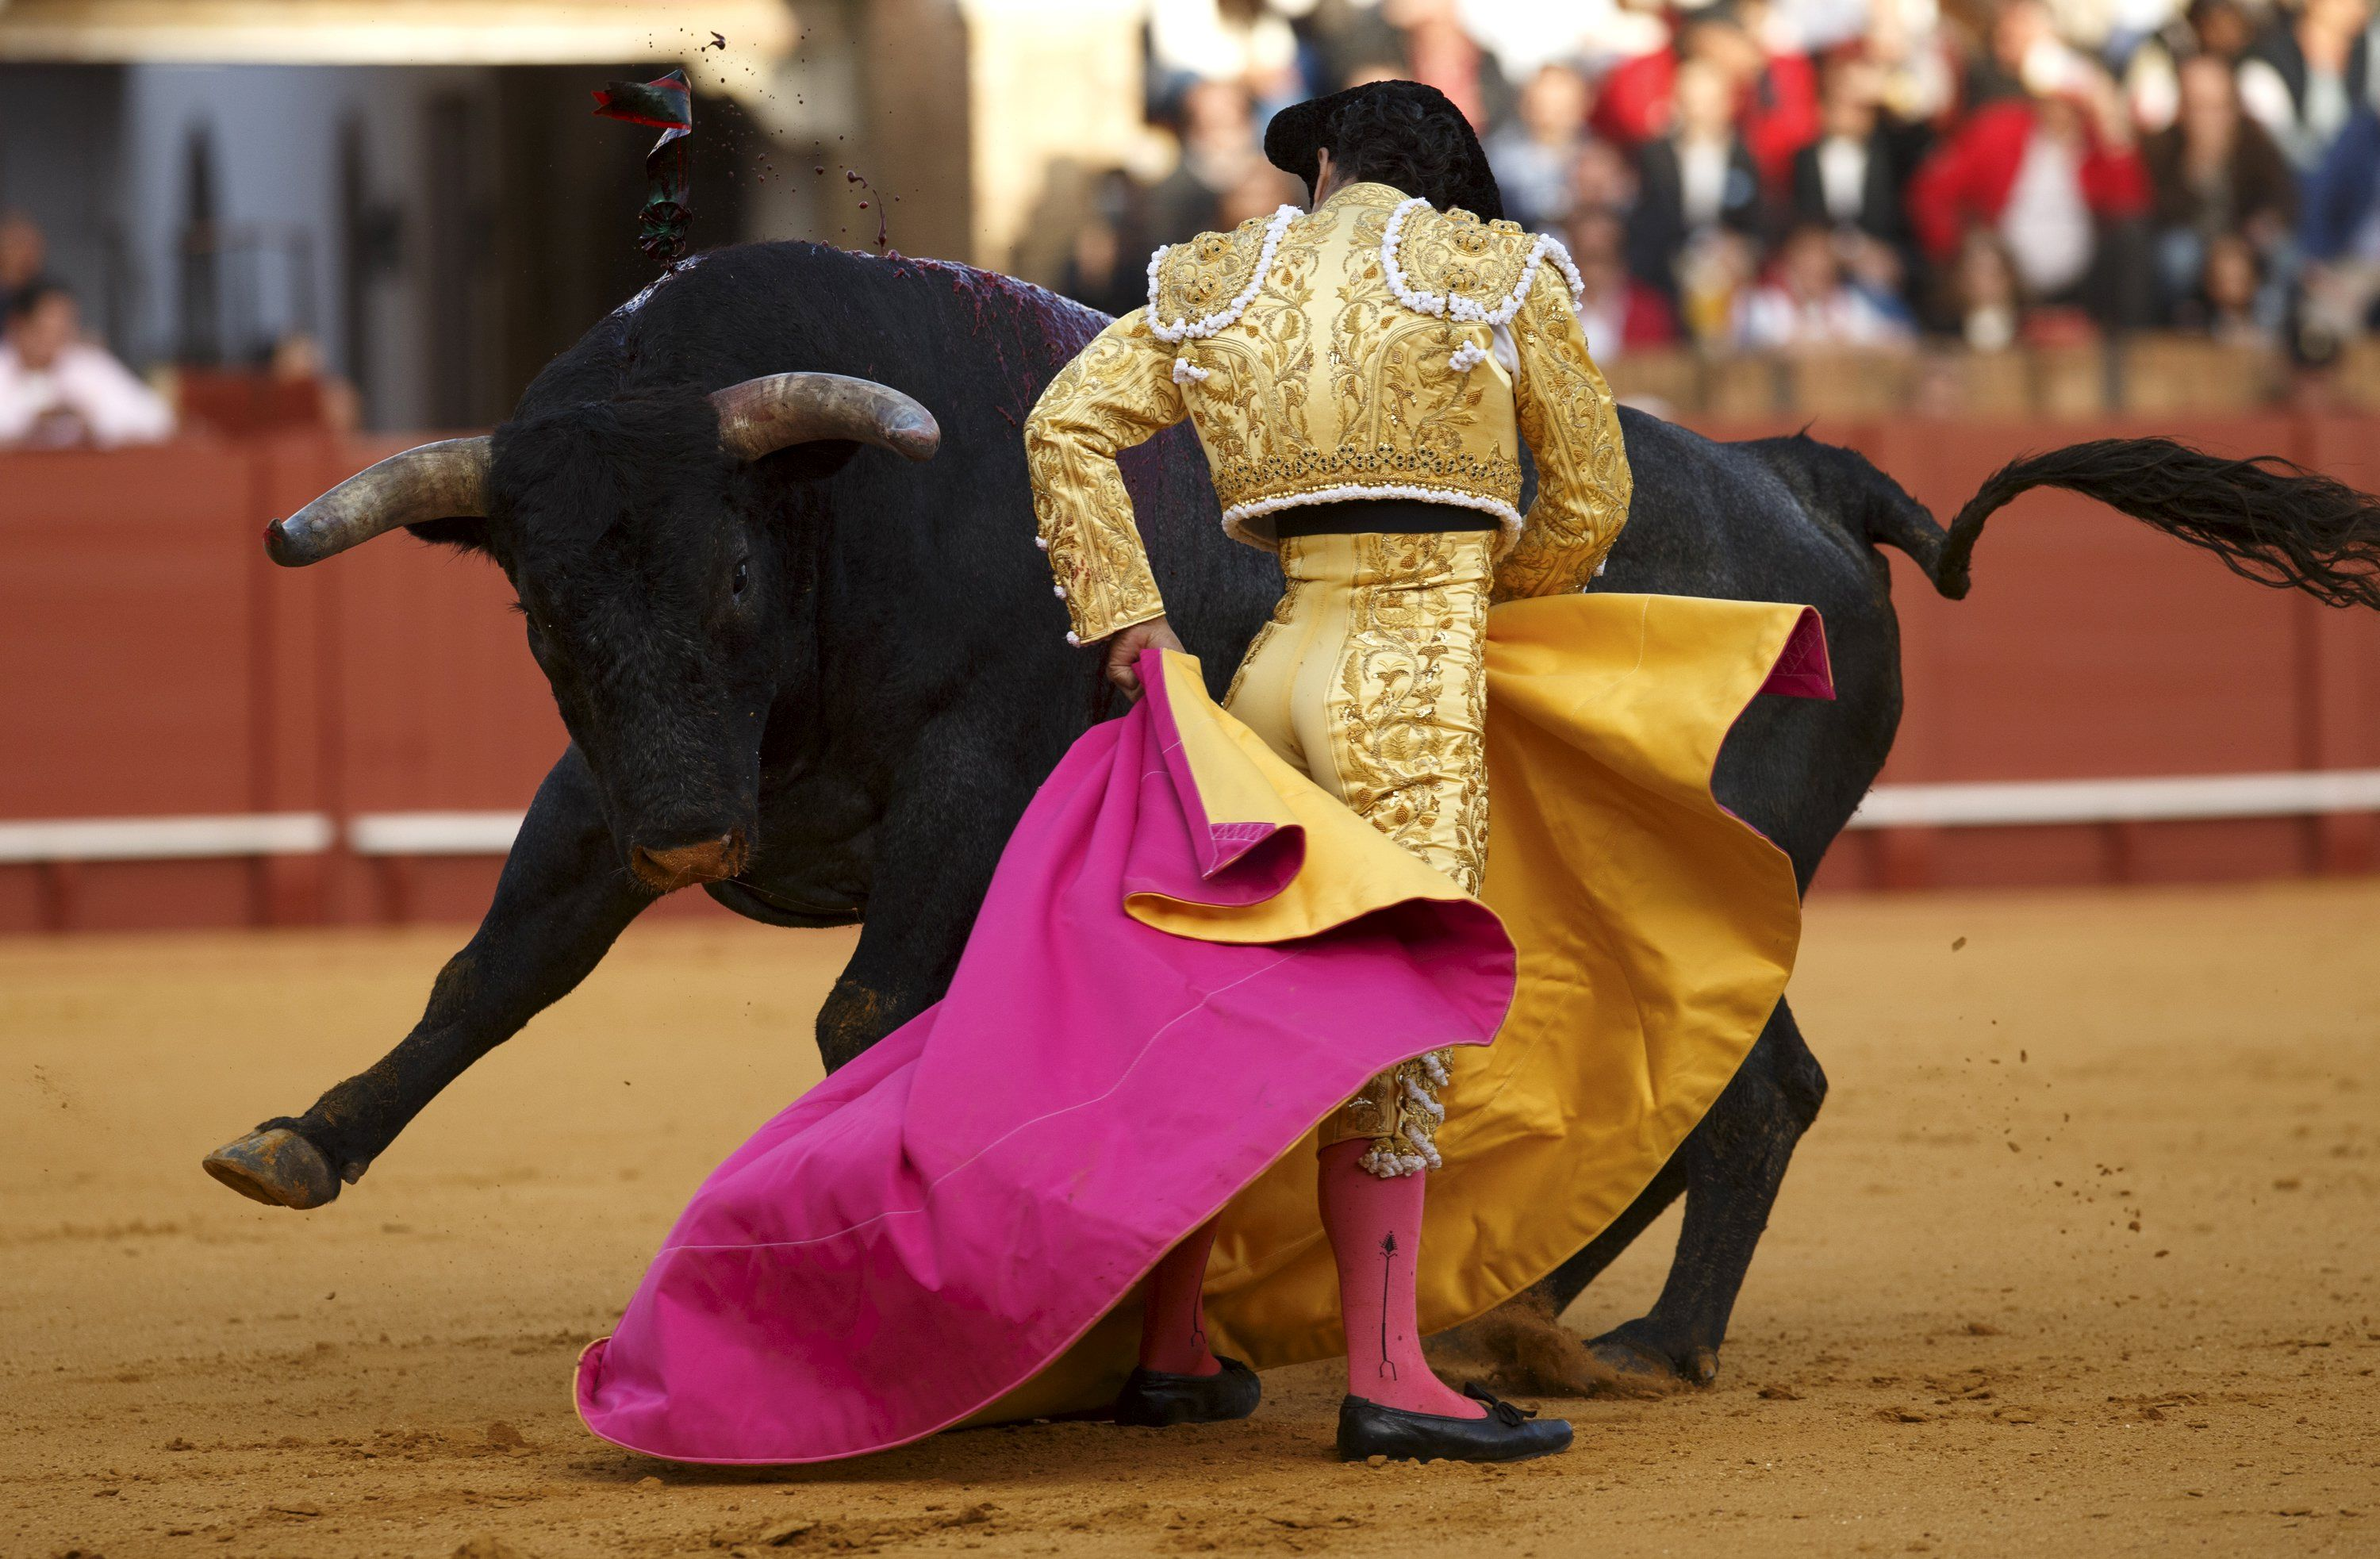 Bull Vs Matador Other Sports Background Wallpapers on Desktop